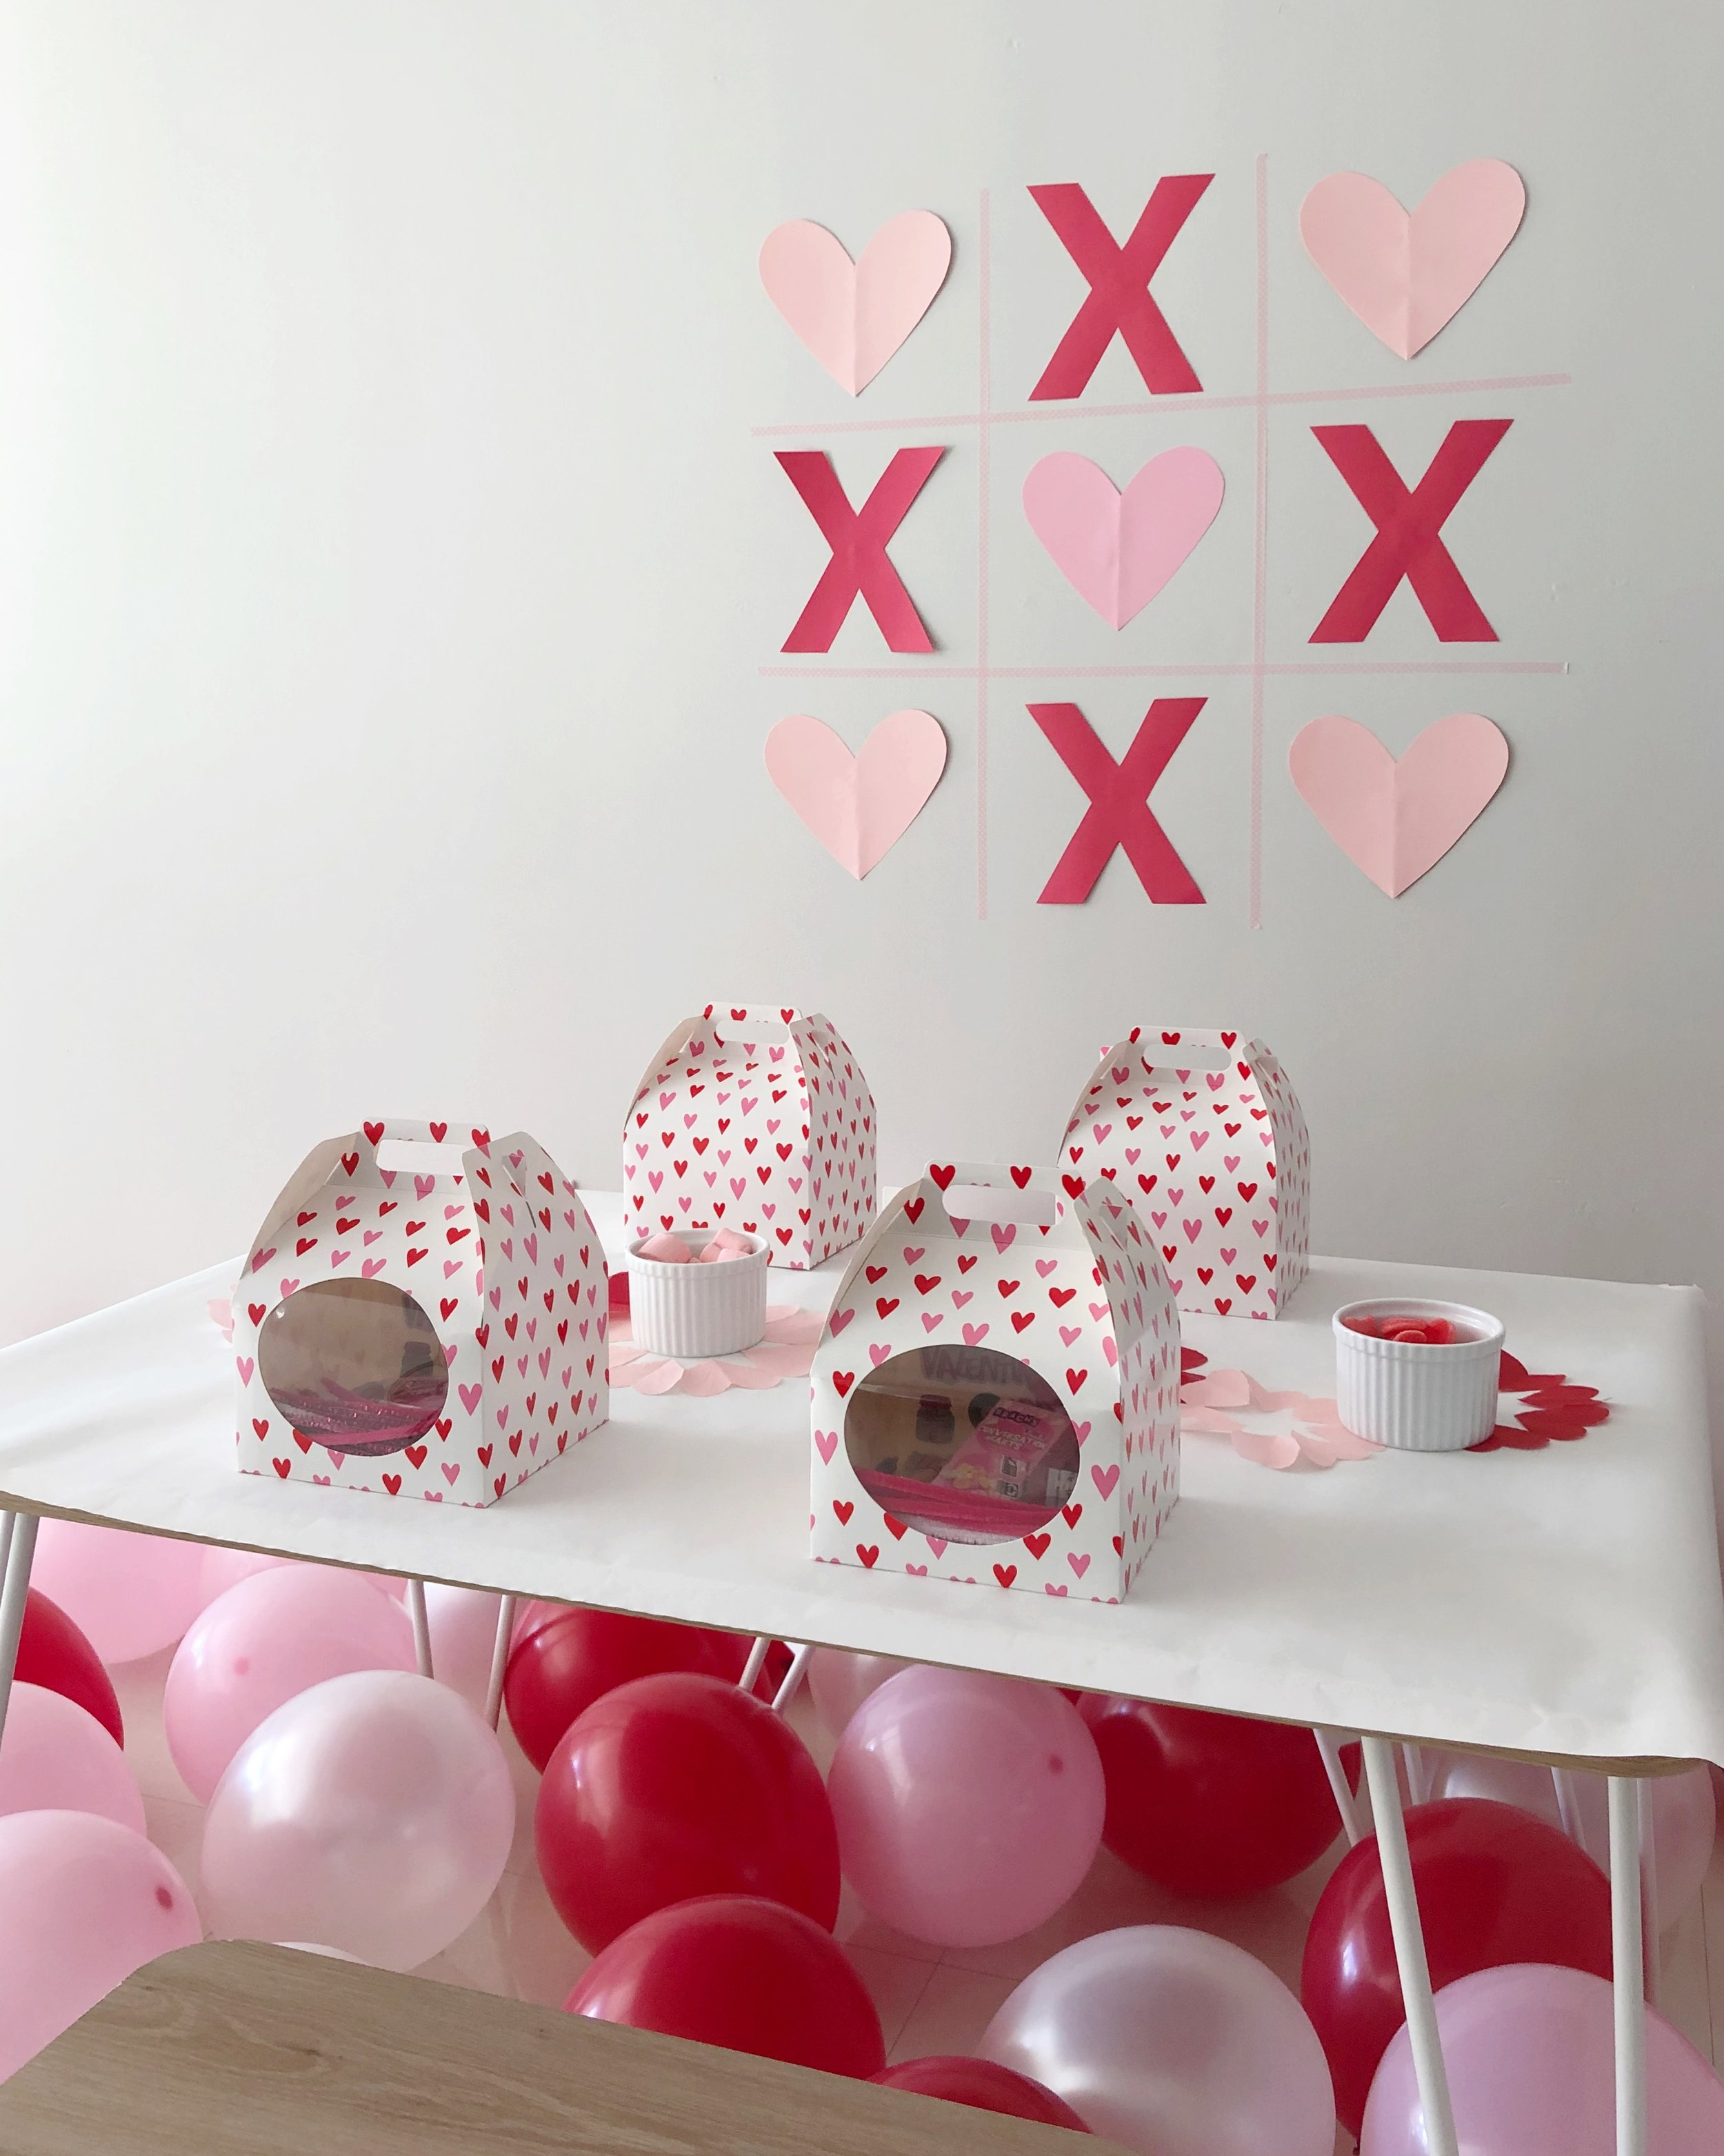 Simple Valentine Party on meethaha.com